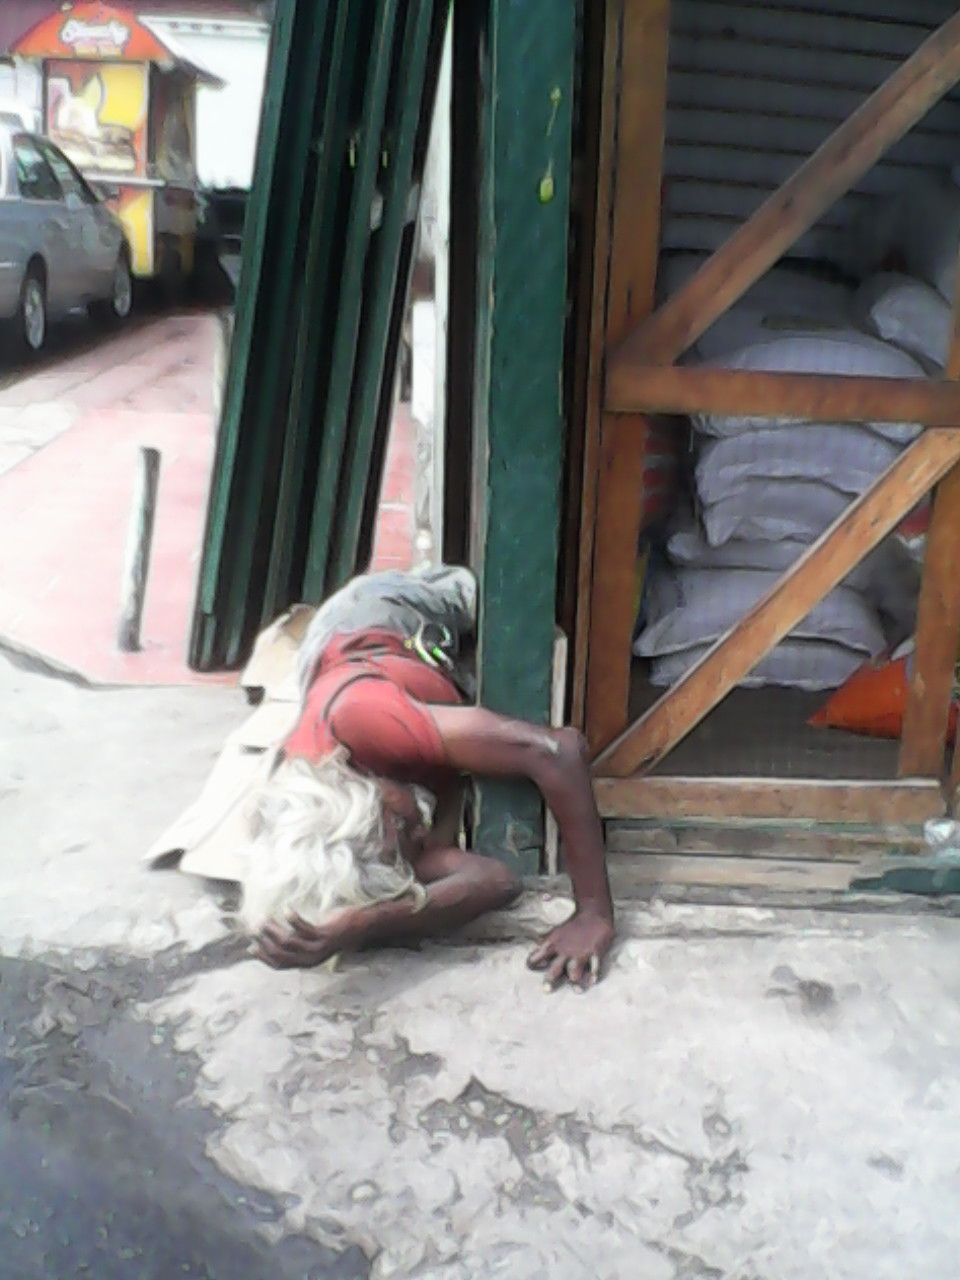 man sleeping on ground - stabroek market